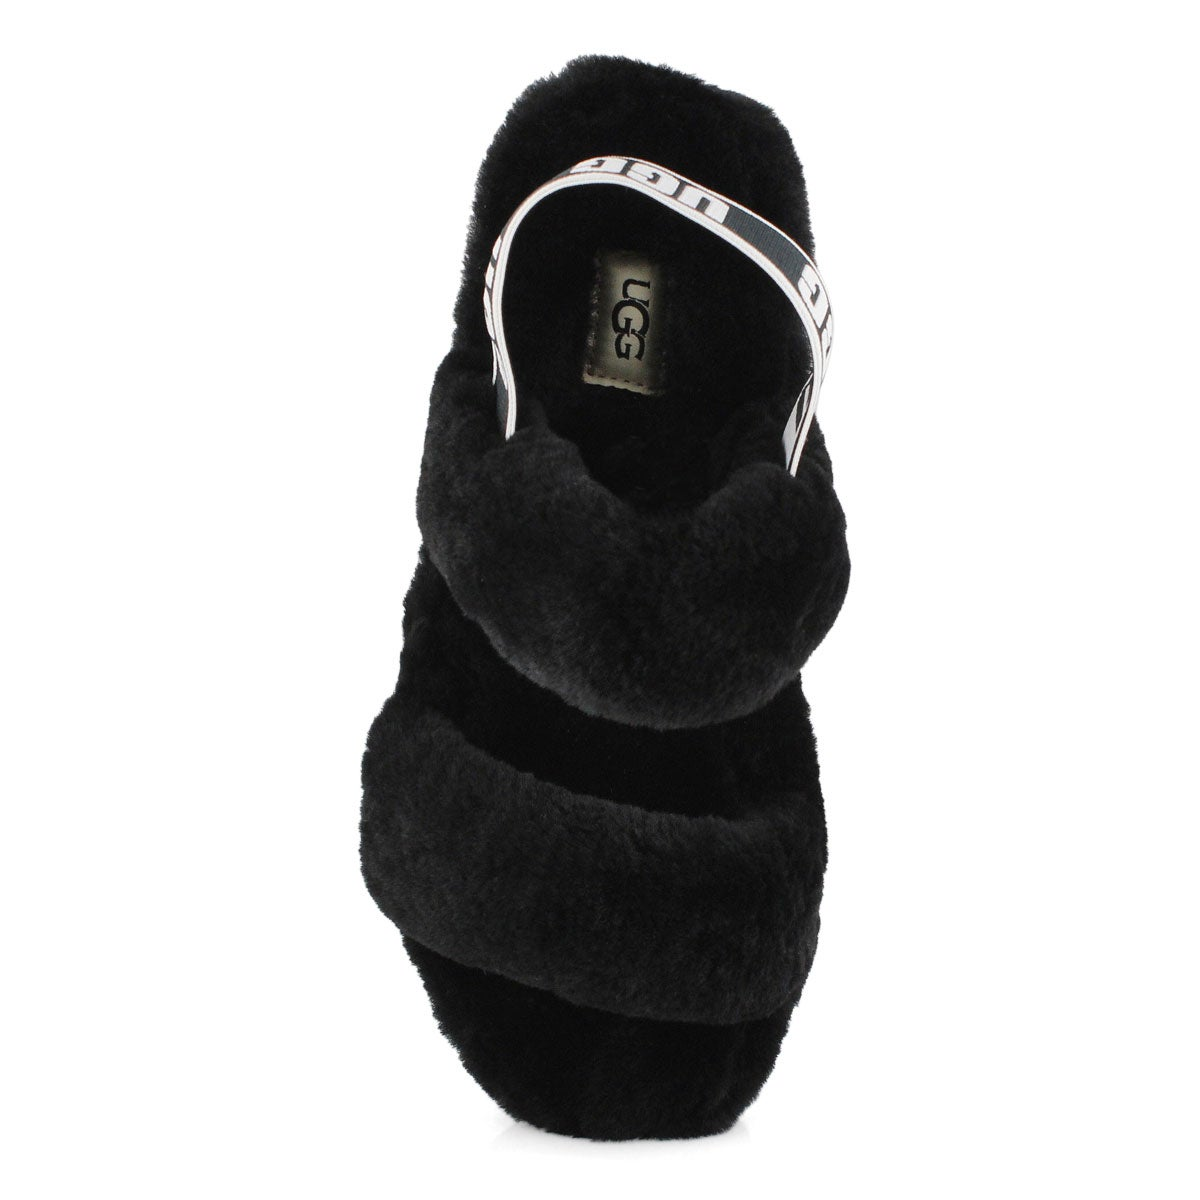 Lds Oh Yeah black sheepskin slipper